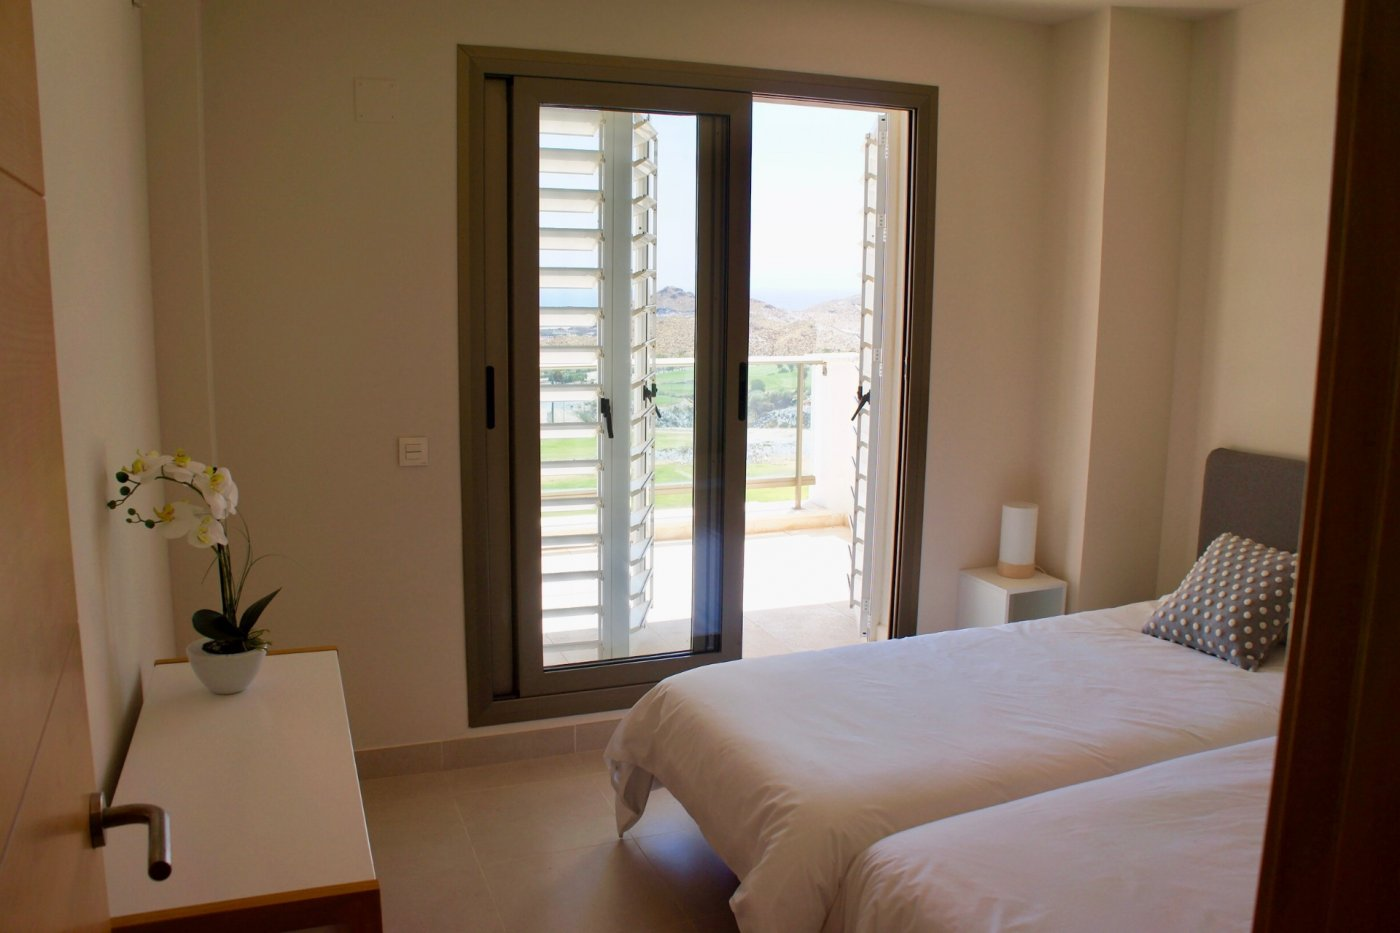 Gallery Image 6 of Big south facing 3 bed, 2 bath apartment with lovely views and 75 m2 terrassesolarium.